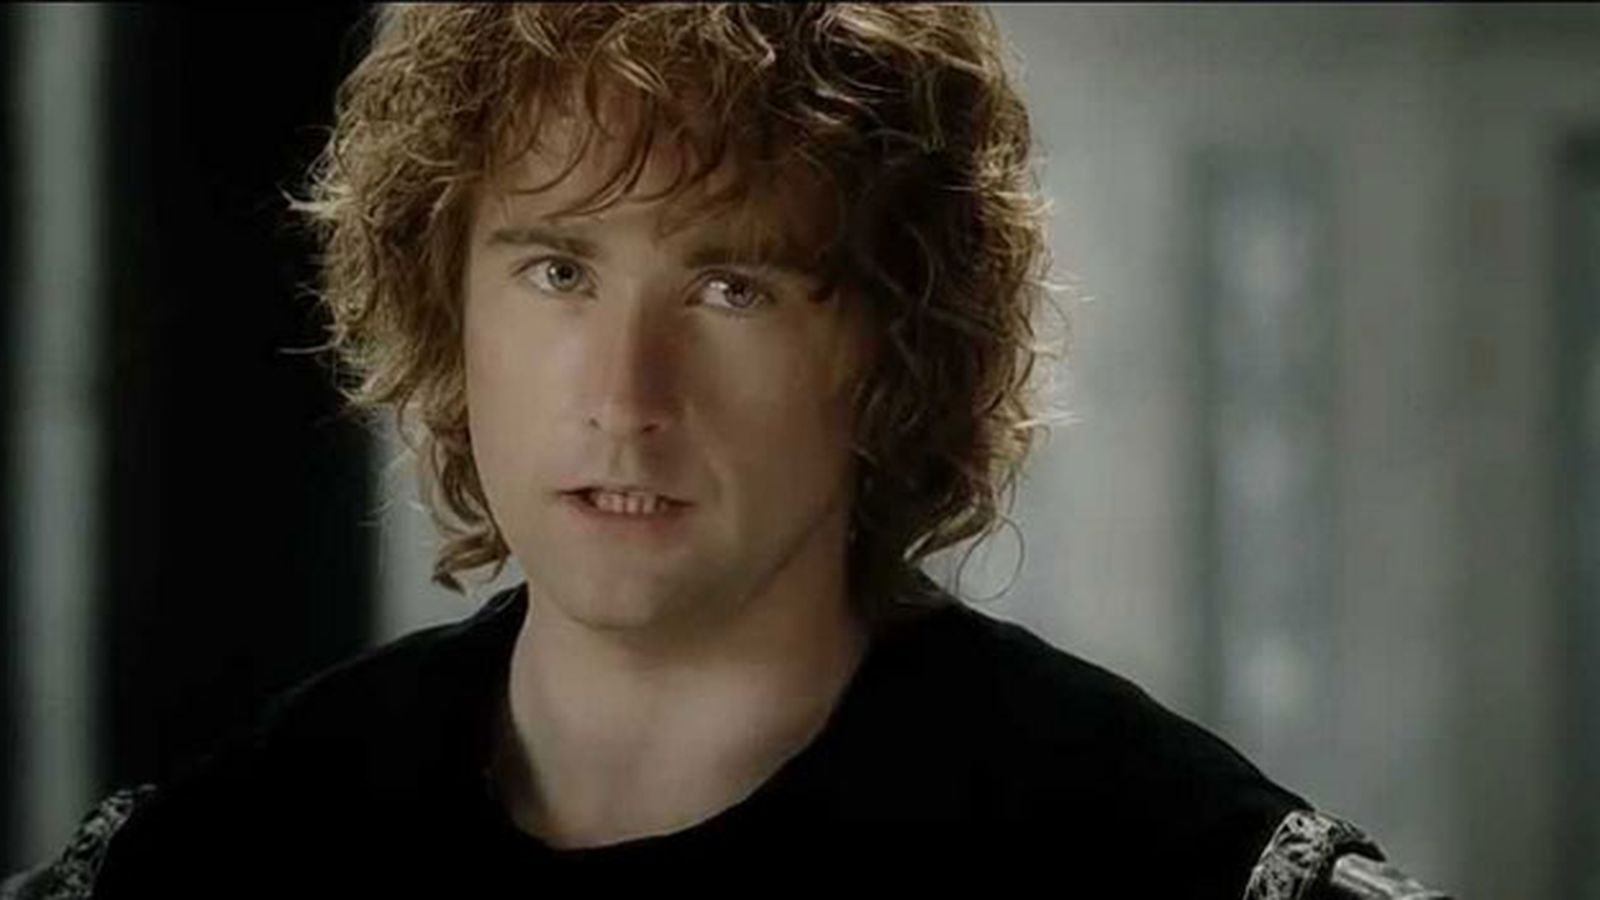 Watch Pippin sing the final song in 'The Hobbit' trilogy ...